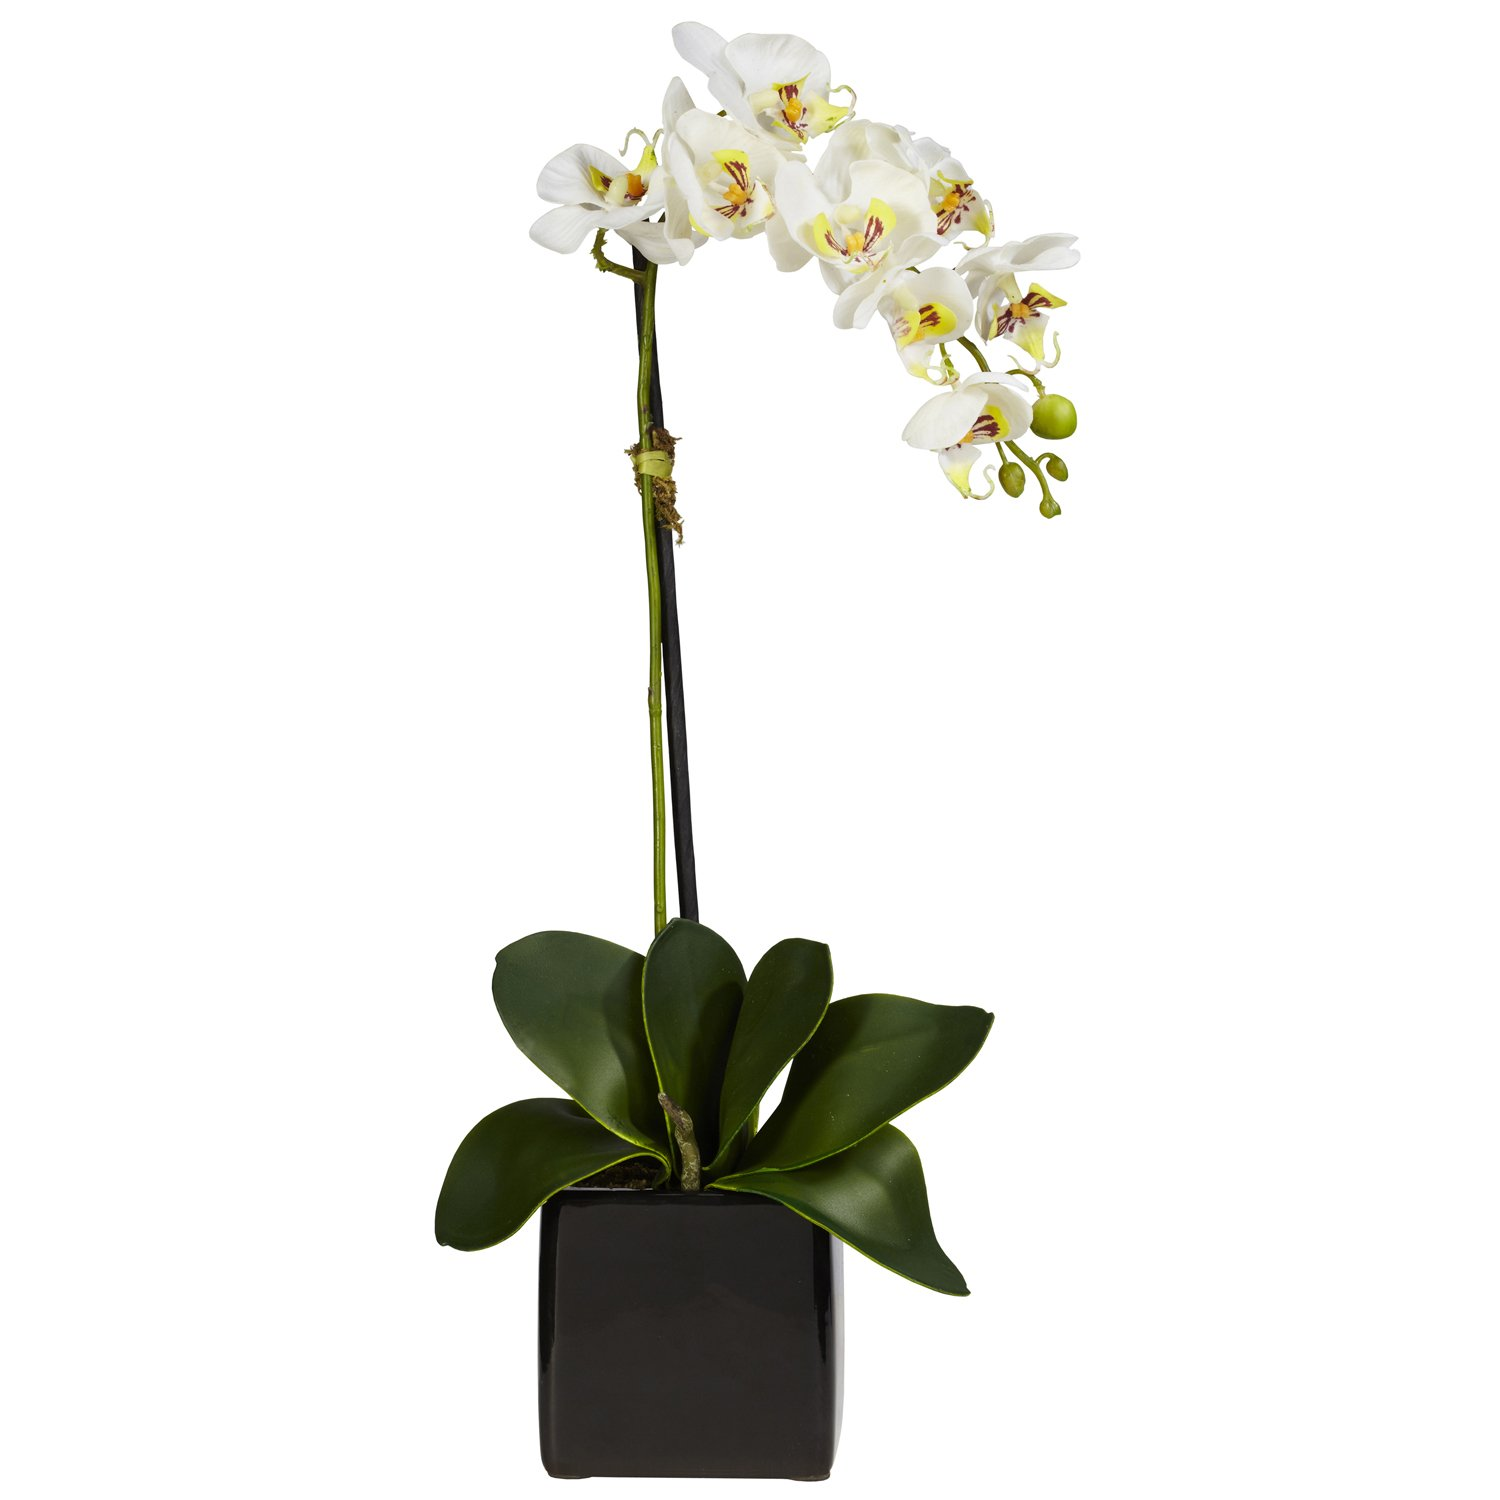 Amazon nearly natural 4757 s2 phaleanopsis orchid with black amazon nearly natural 4757 s2 phaleanopsis orchid with black vase decorative silk arrangement red and white set of 2 home kitchen reviewsmspy